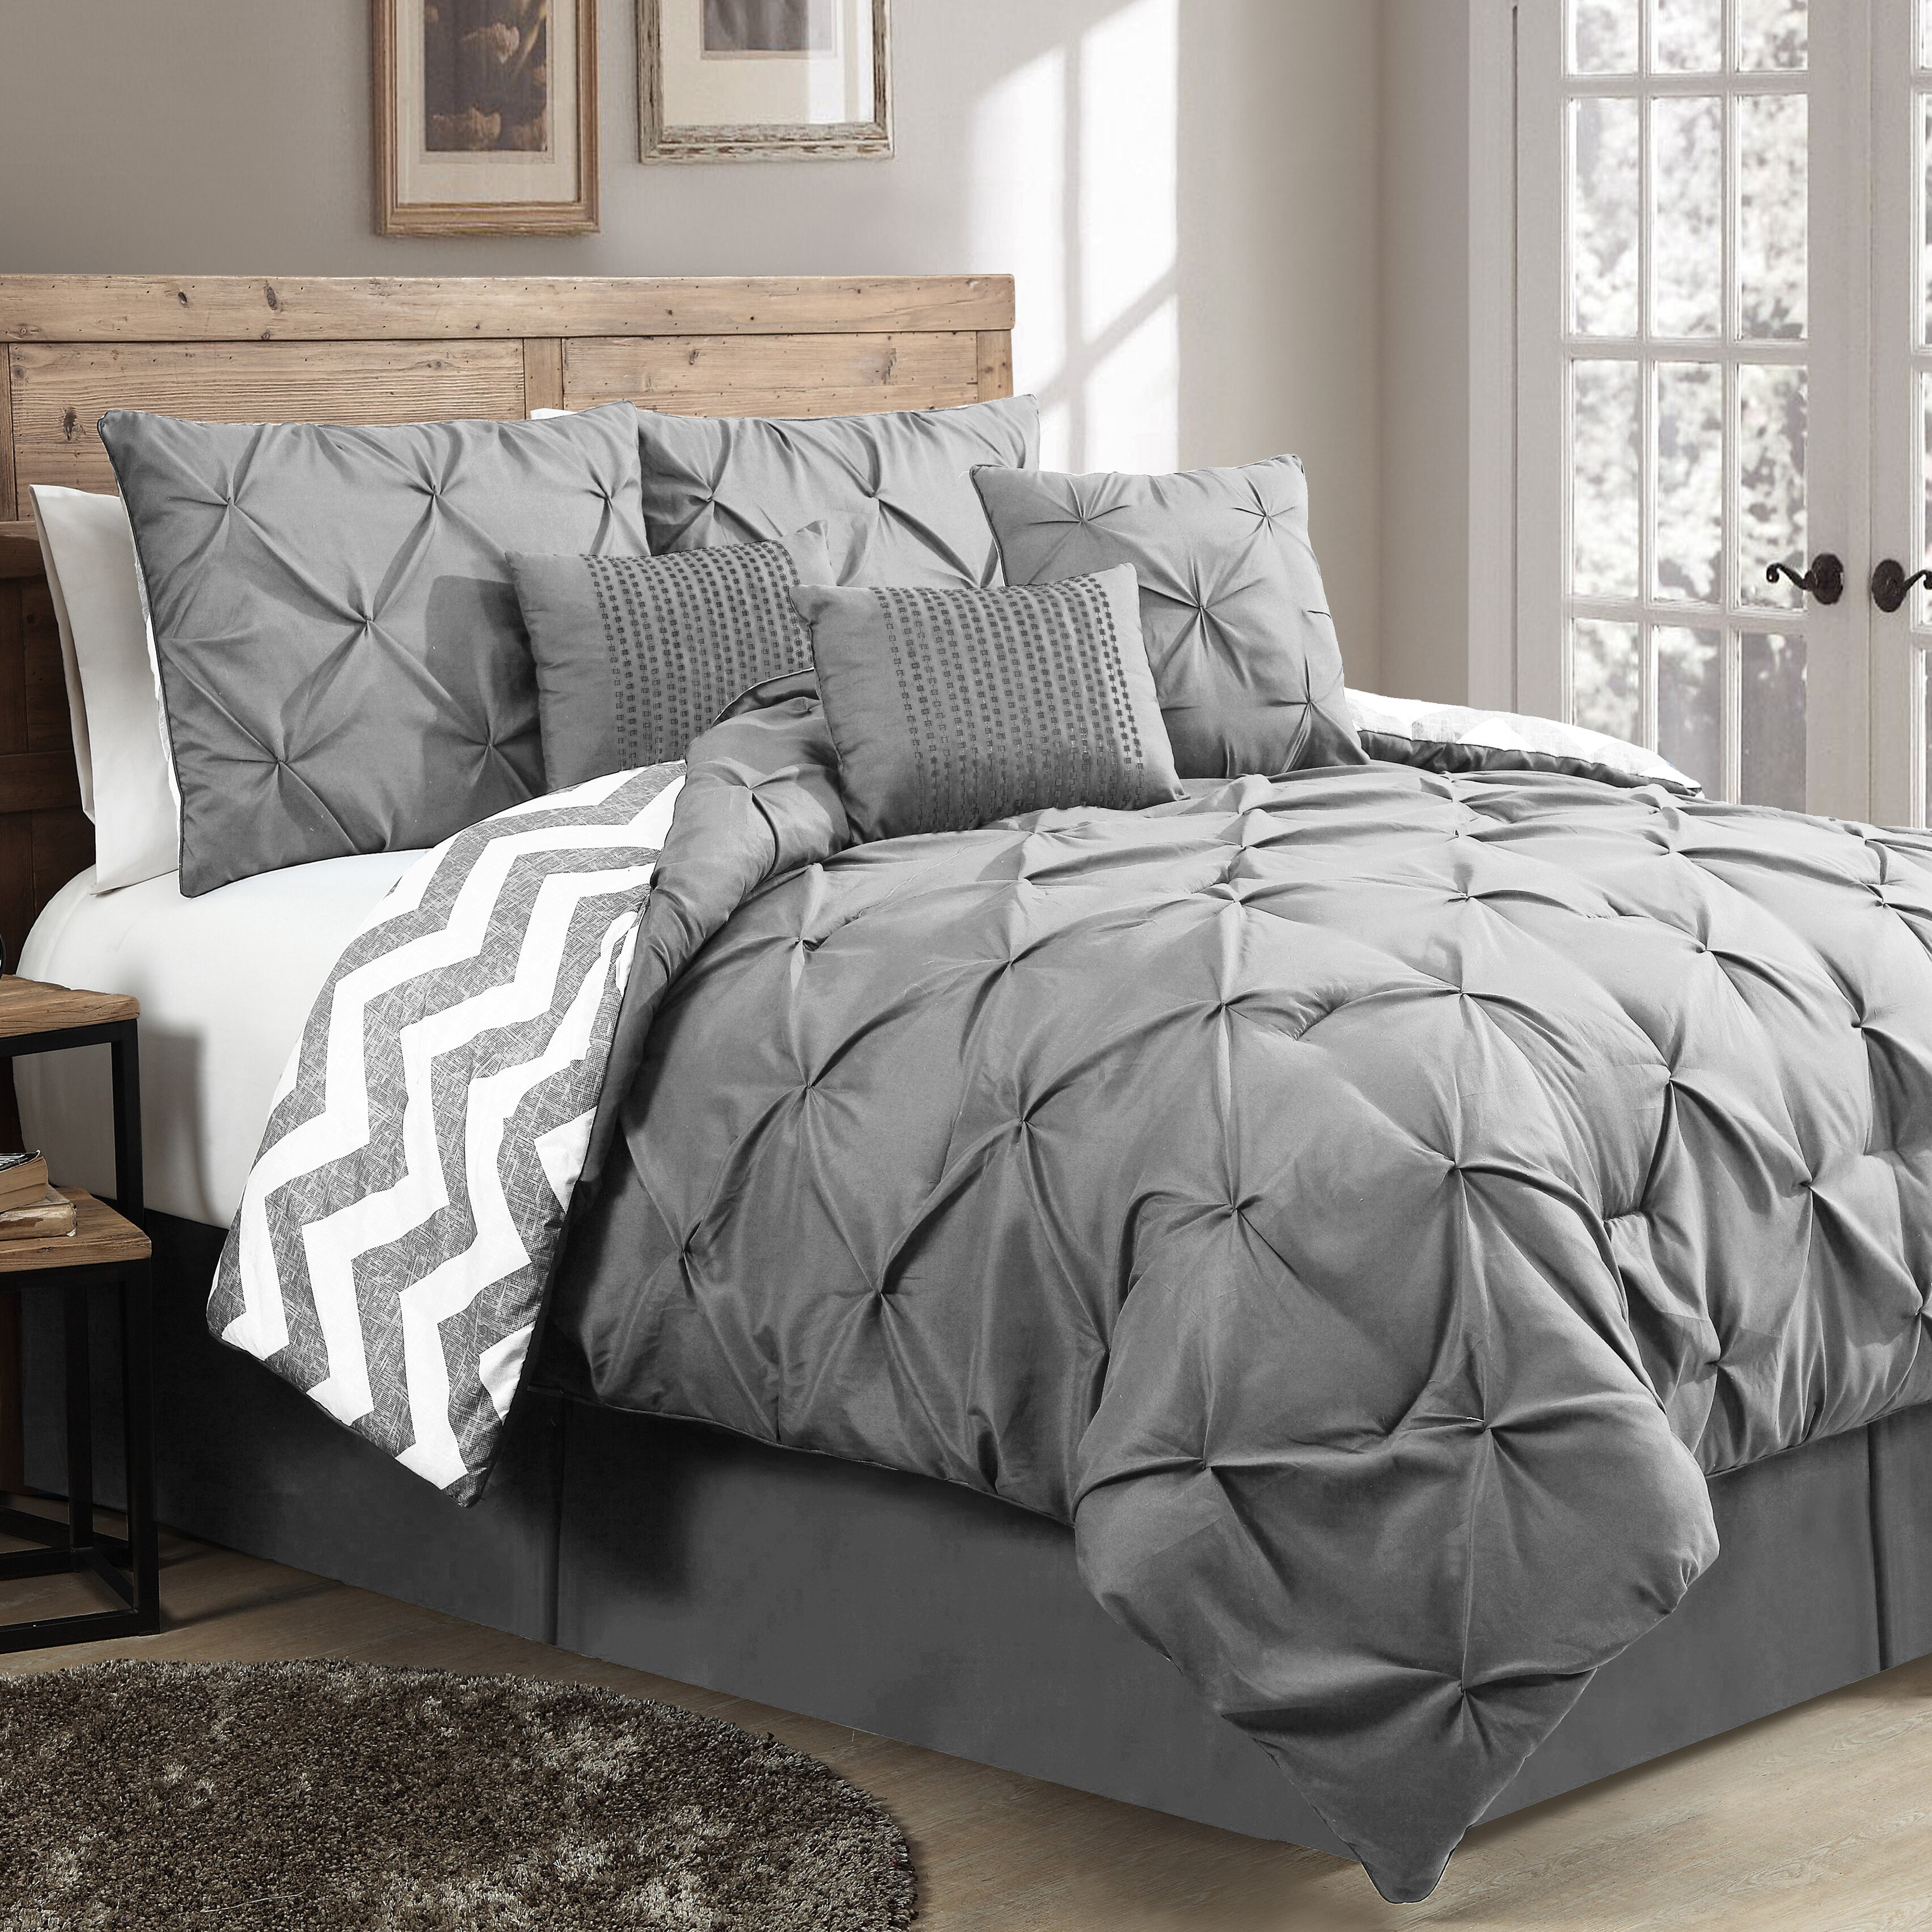 bedroom sets and set purple grey gray bedding comforter king